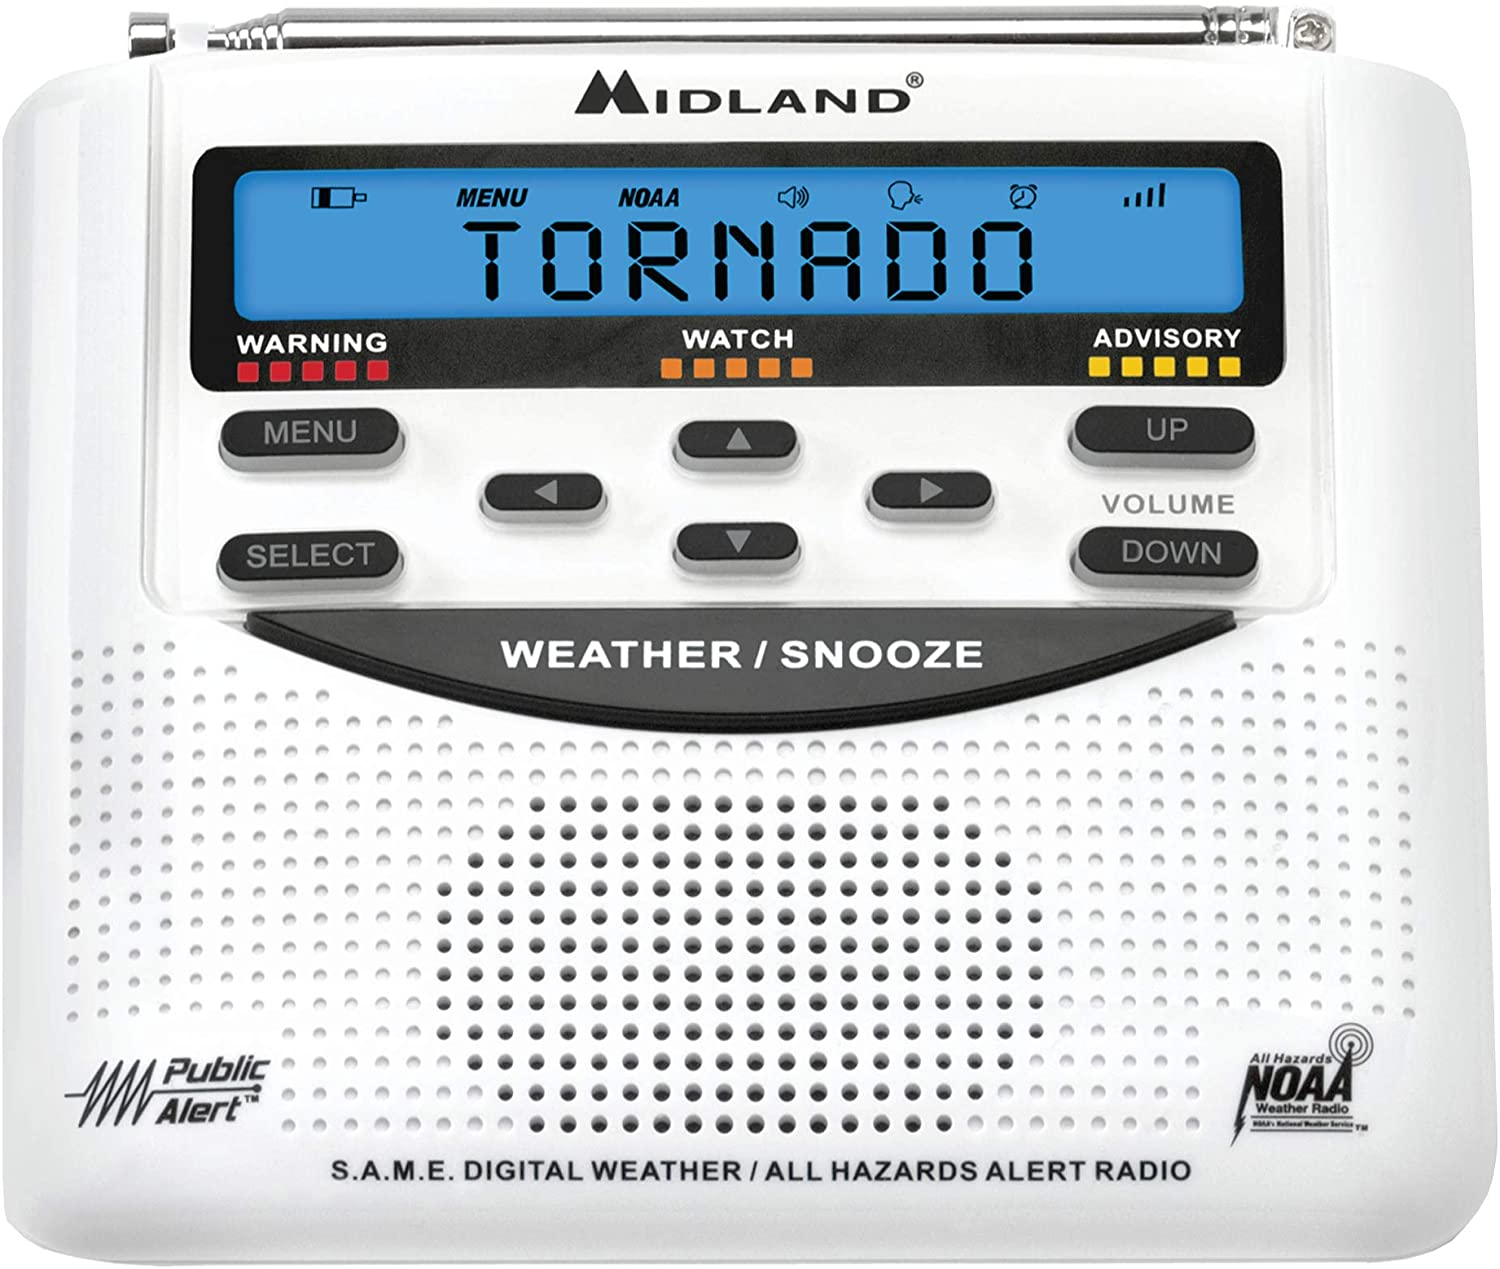 Midland NOAA Emergency Alert Radio